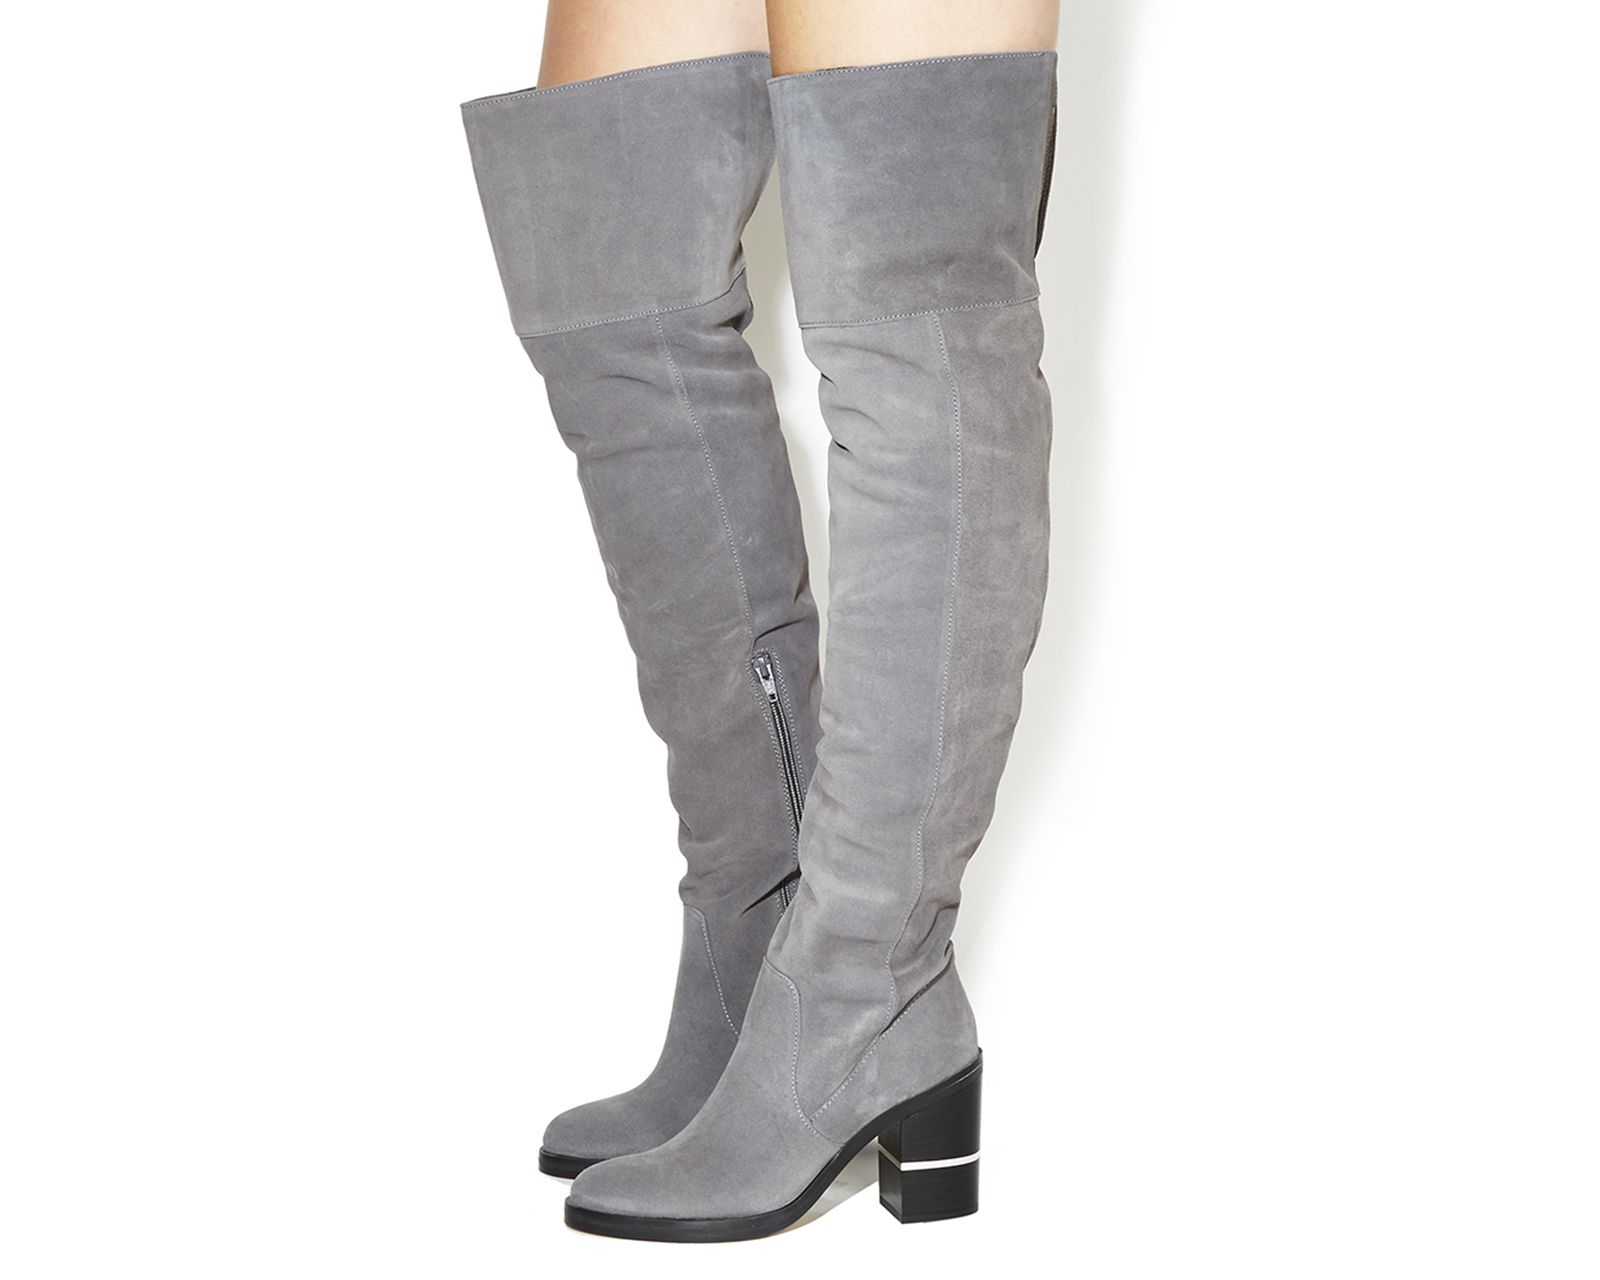 c1933d251e6 Buy Grey Suede Office Elemental Over the Knee Boots from OFFICE.co ...